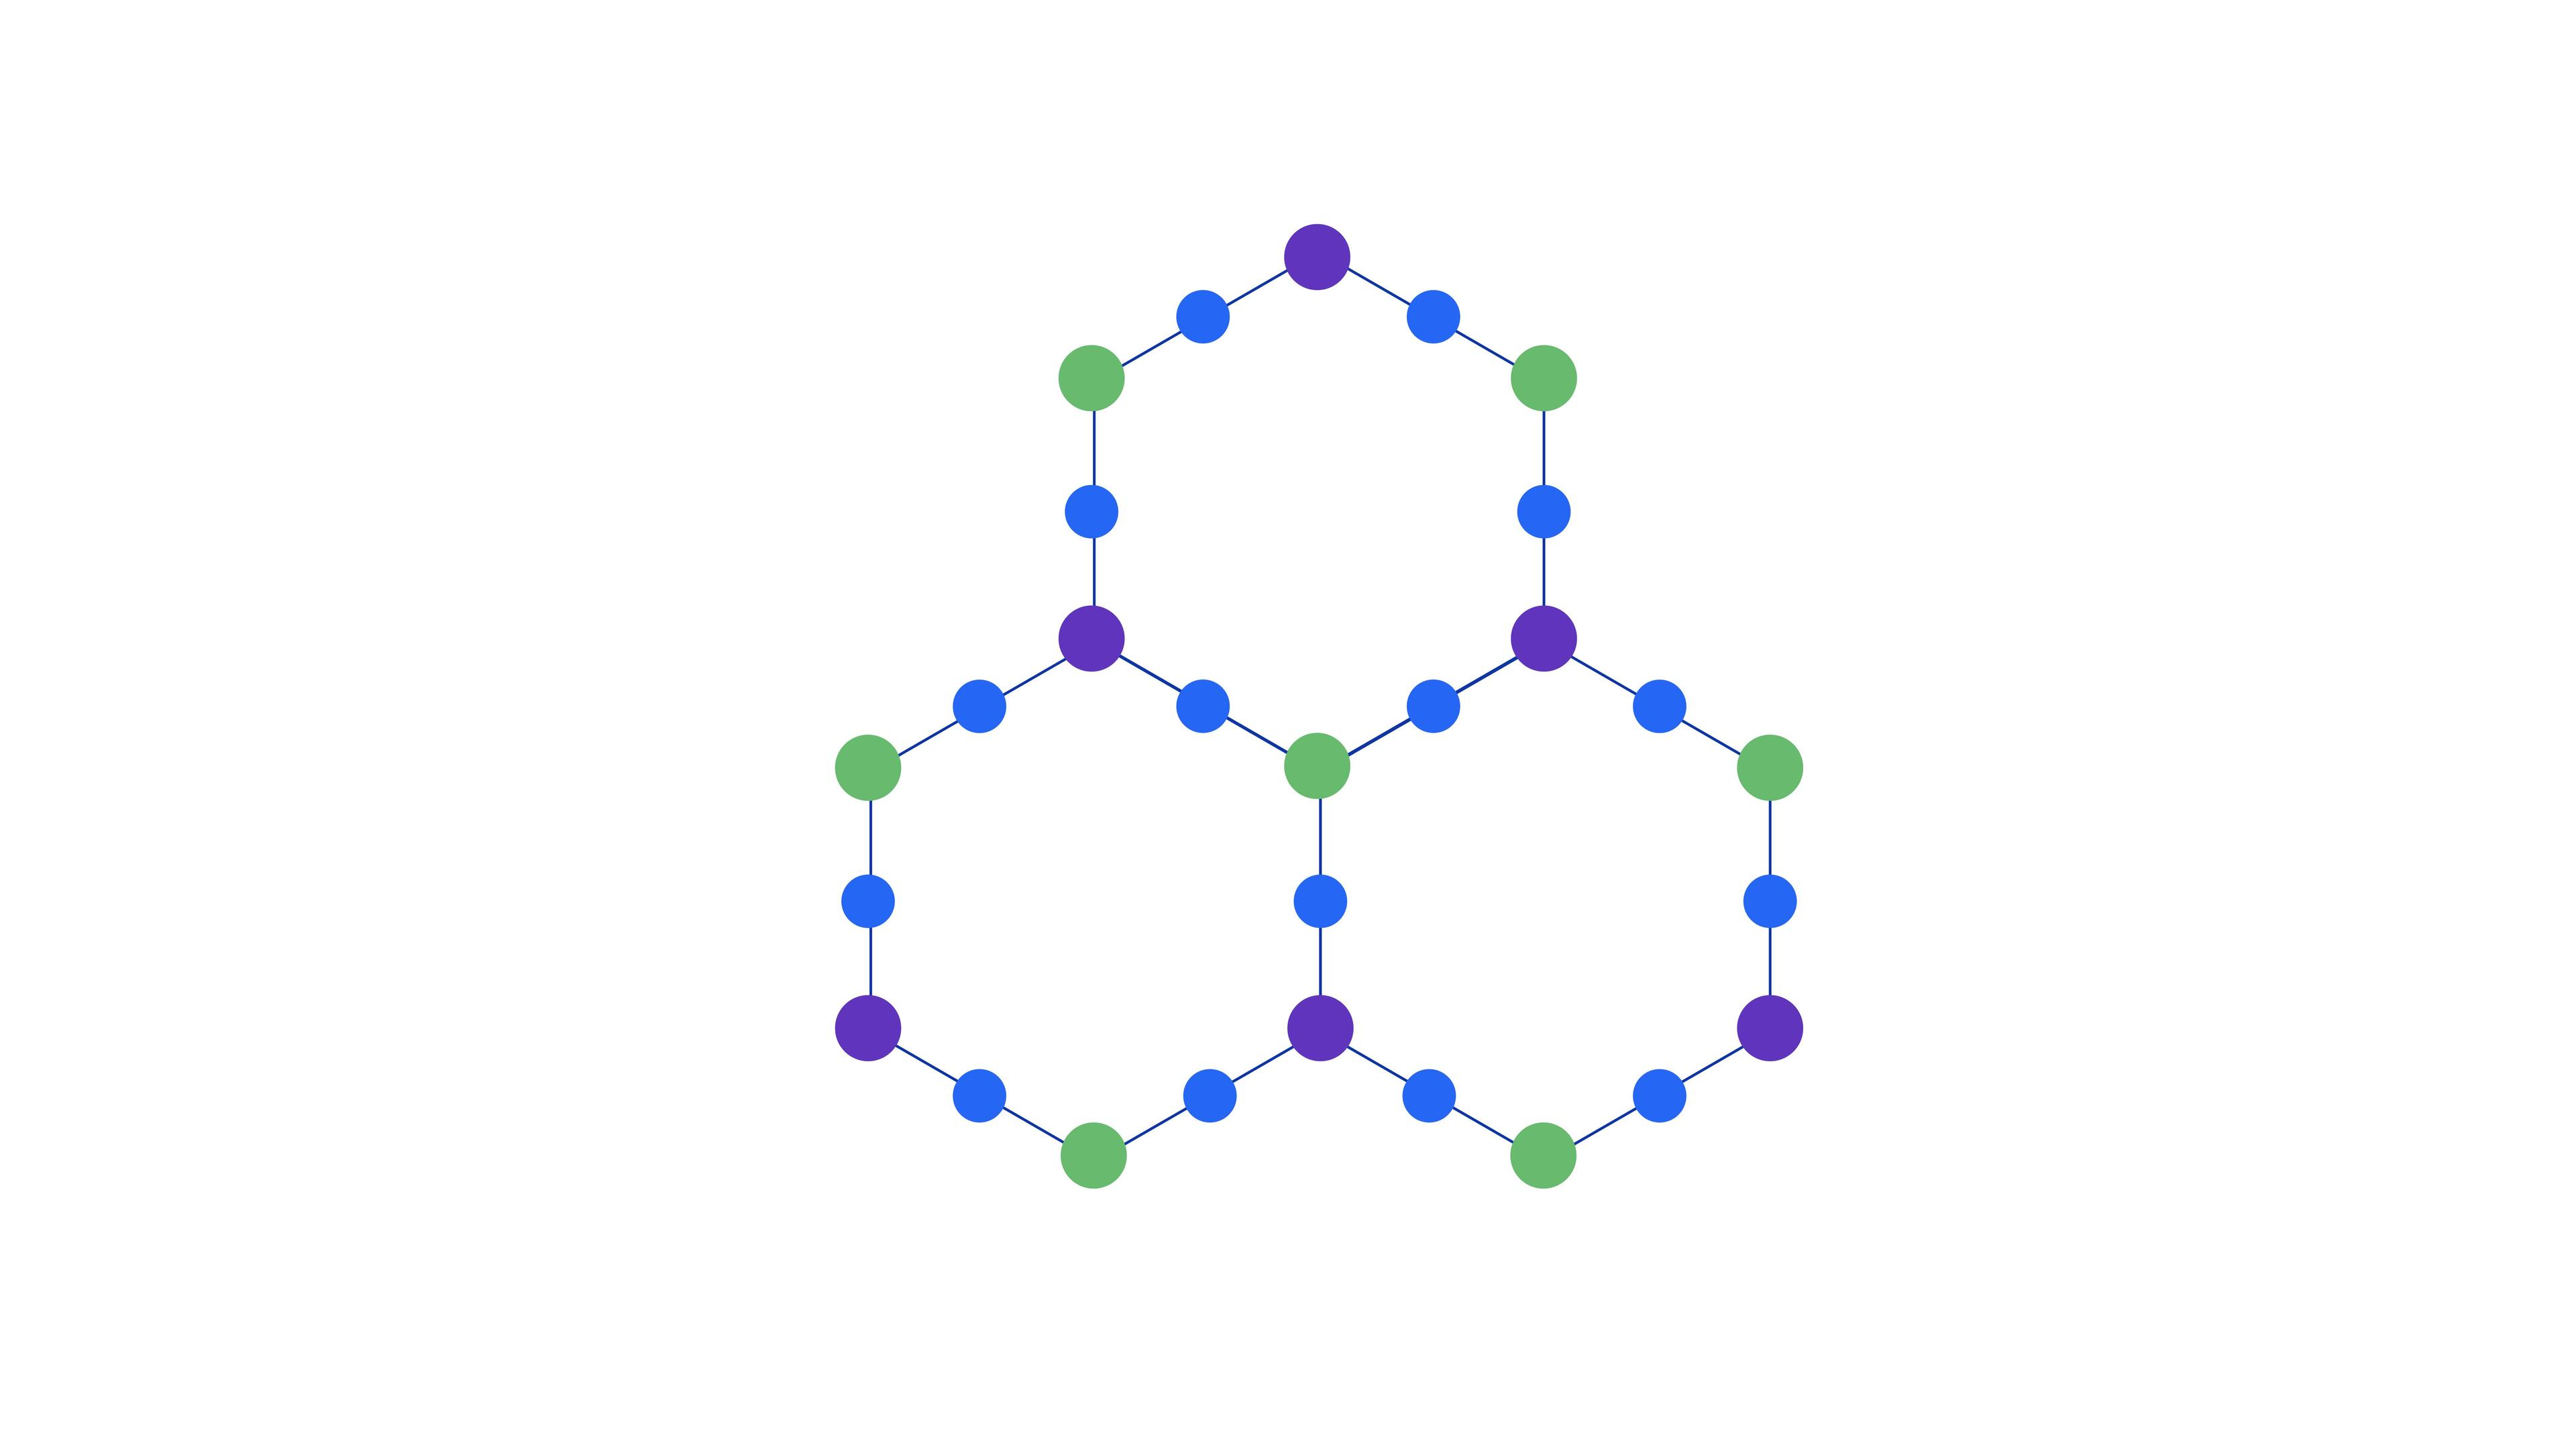 Three unit cells of the heavy-hex lattice. Colors indicate the pattern of three distinct frequencies for control (dark blue) and two sets of target qubits (green and purple).